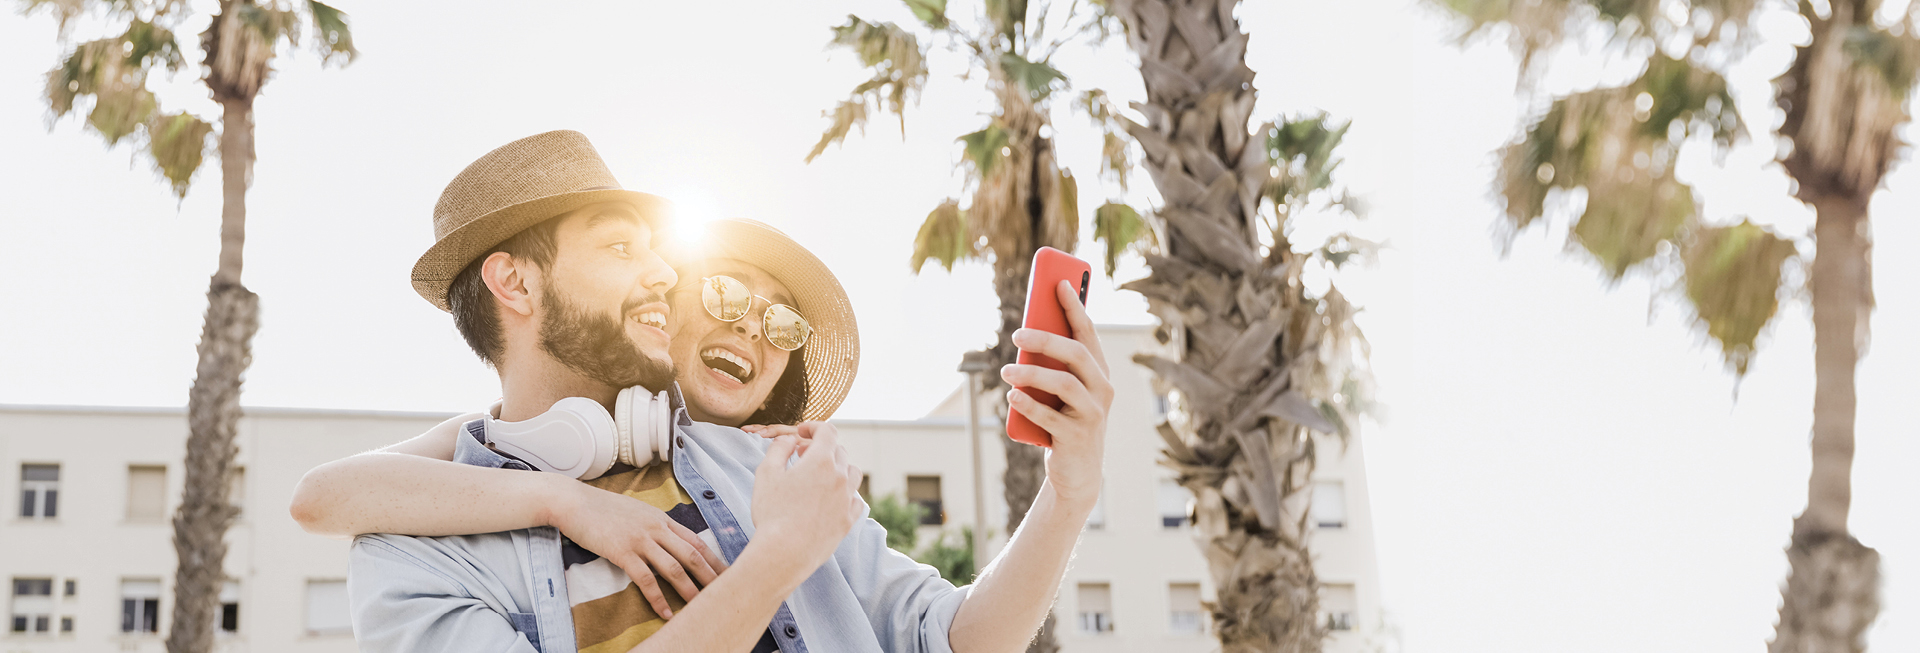 Guy and girl looking at phone